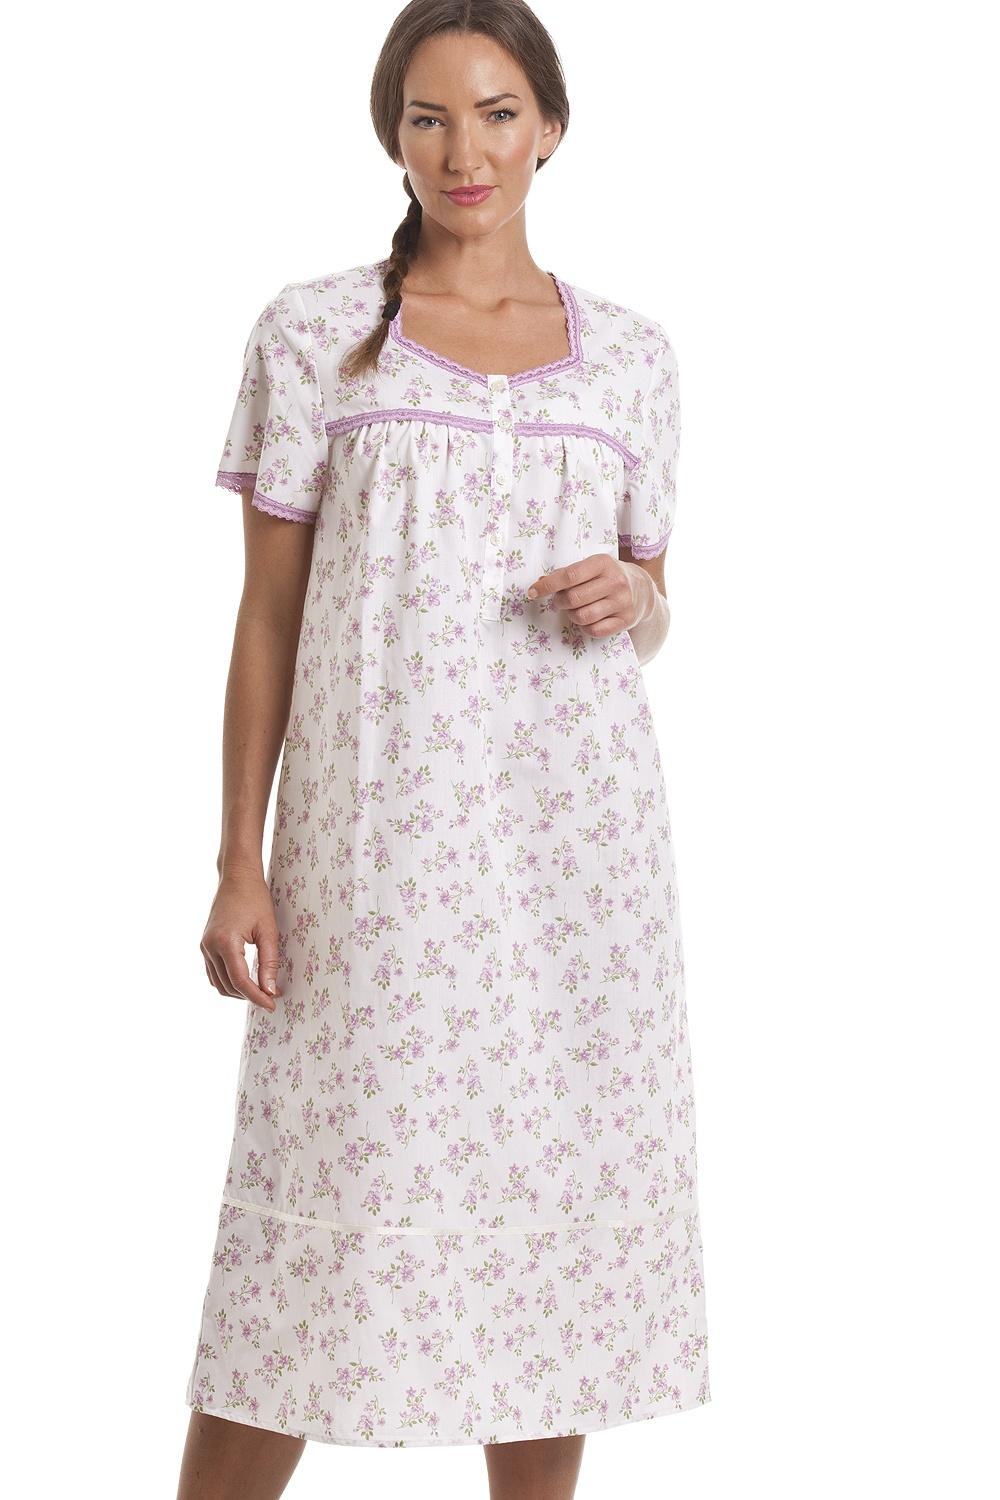 21f296b26c Camille Classic Lilac Floral Print Short Sleeve White Nightdress